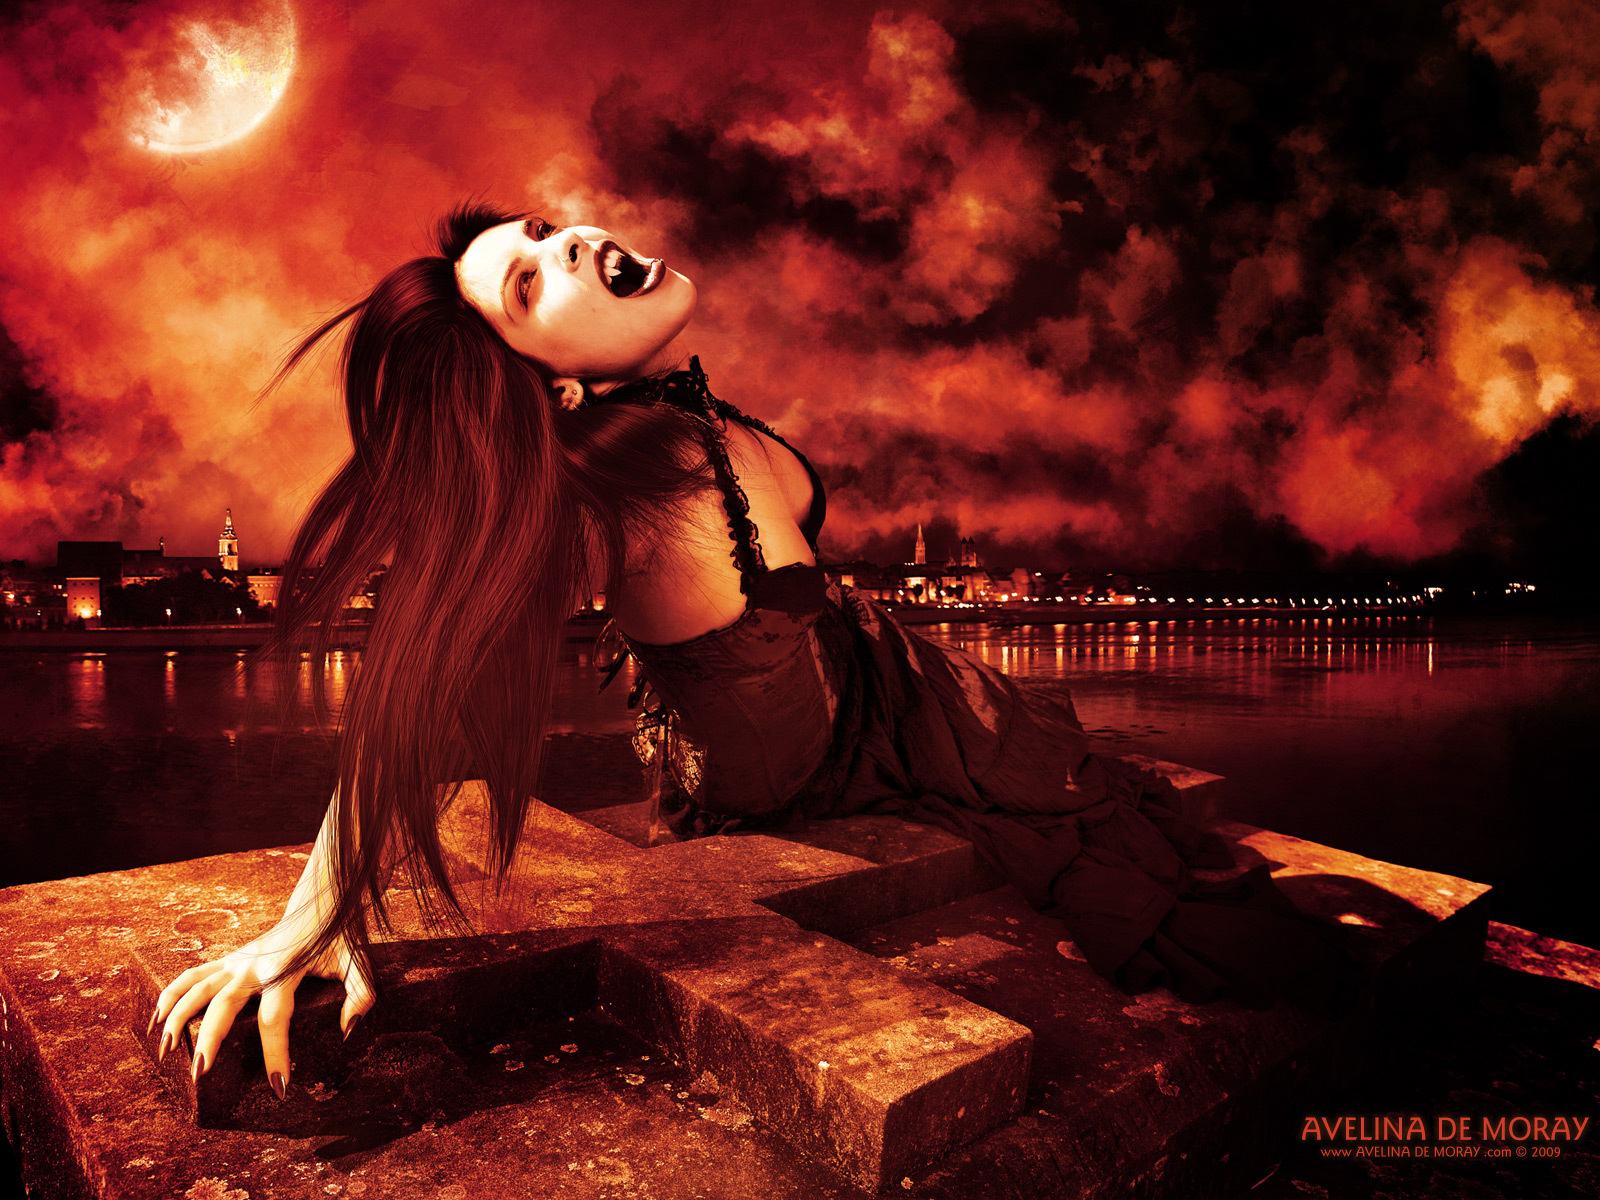 Vampire Love Hd Wallpaper : Vampires images vampire art wallpapers by artist Avelina De Moray HD wallpaper and background ...